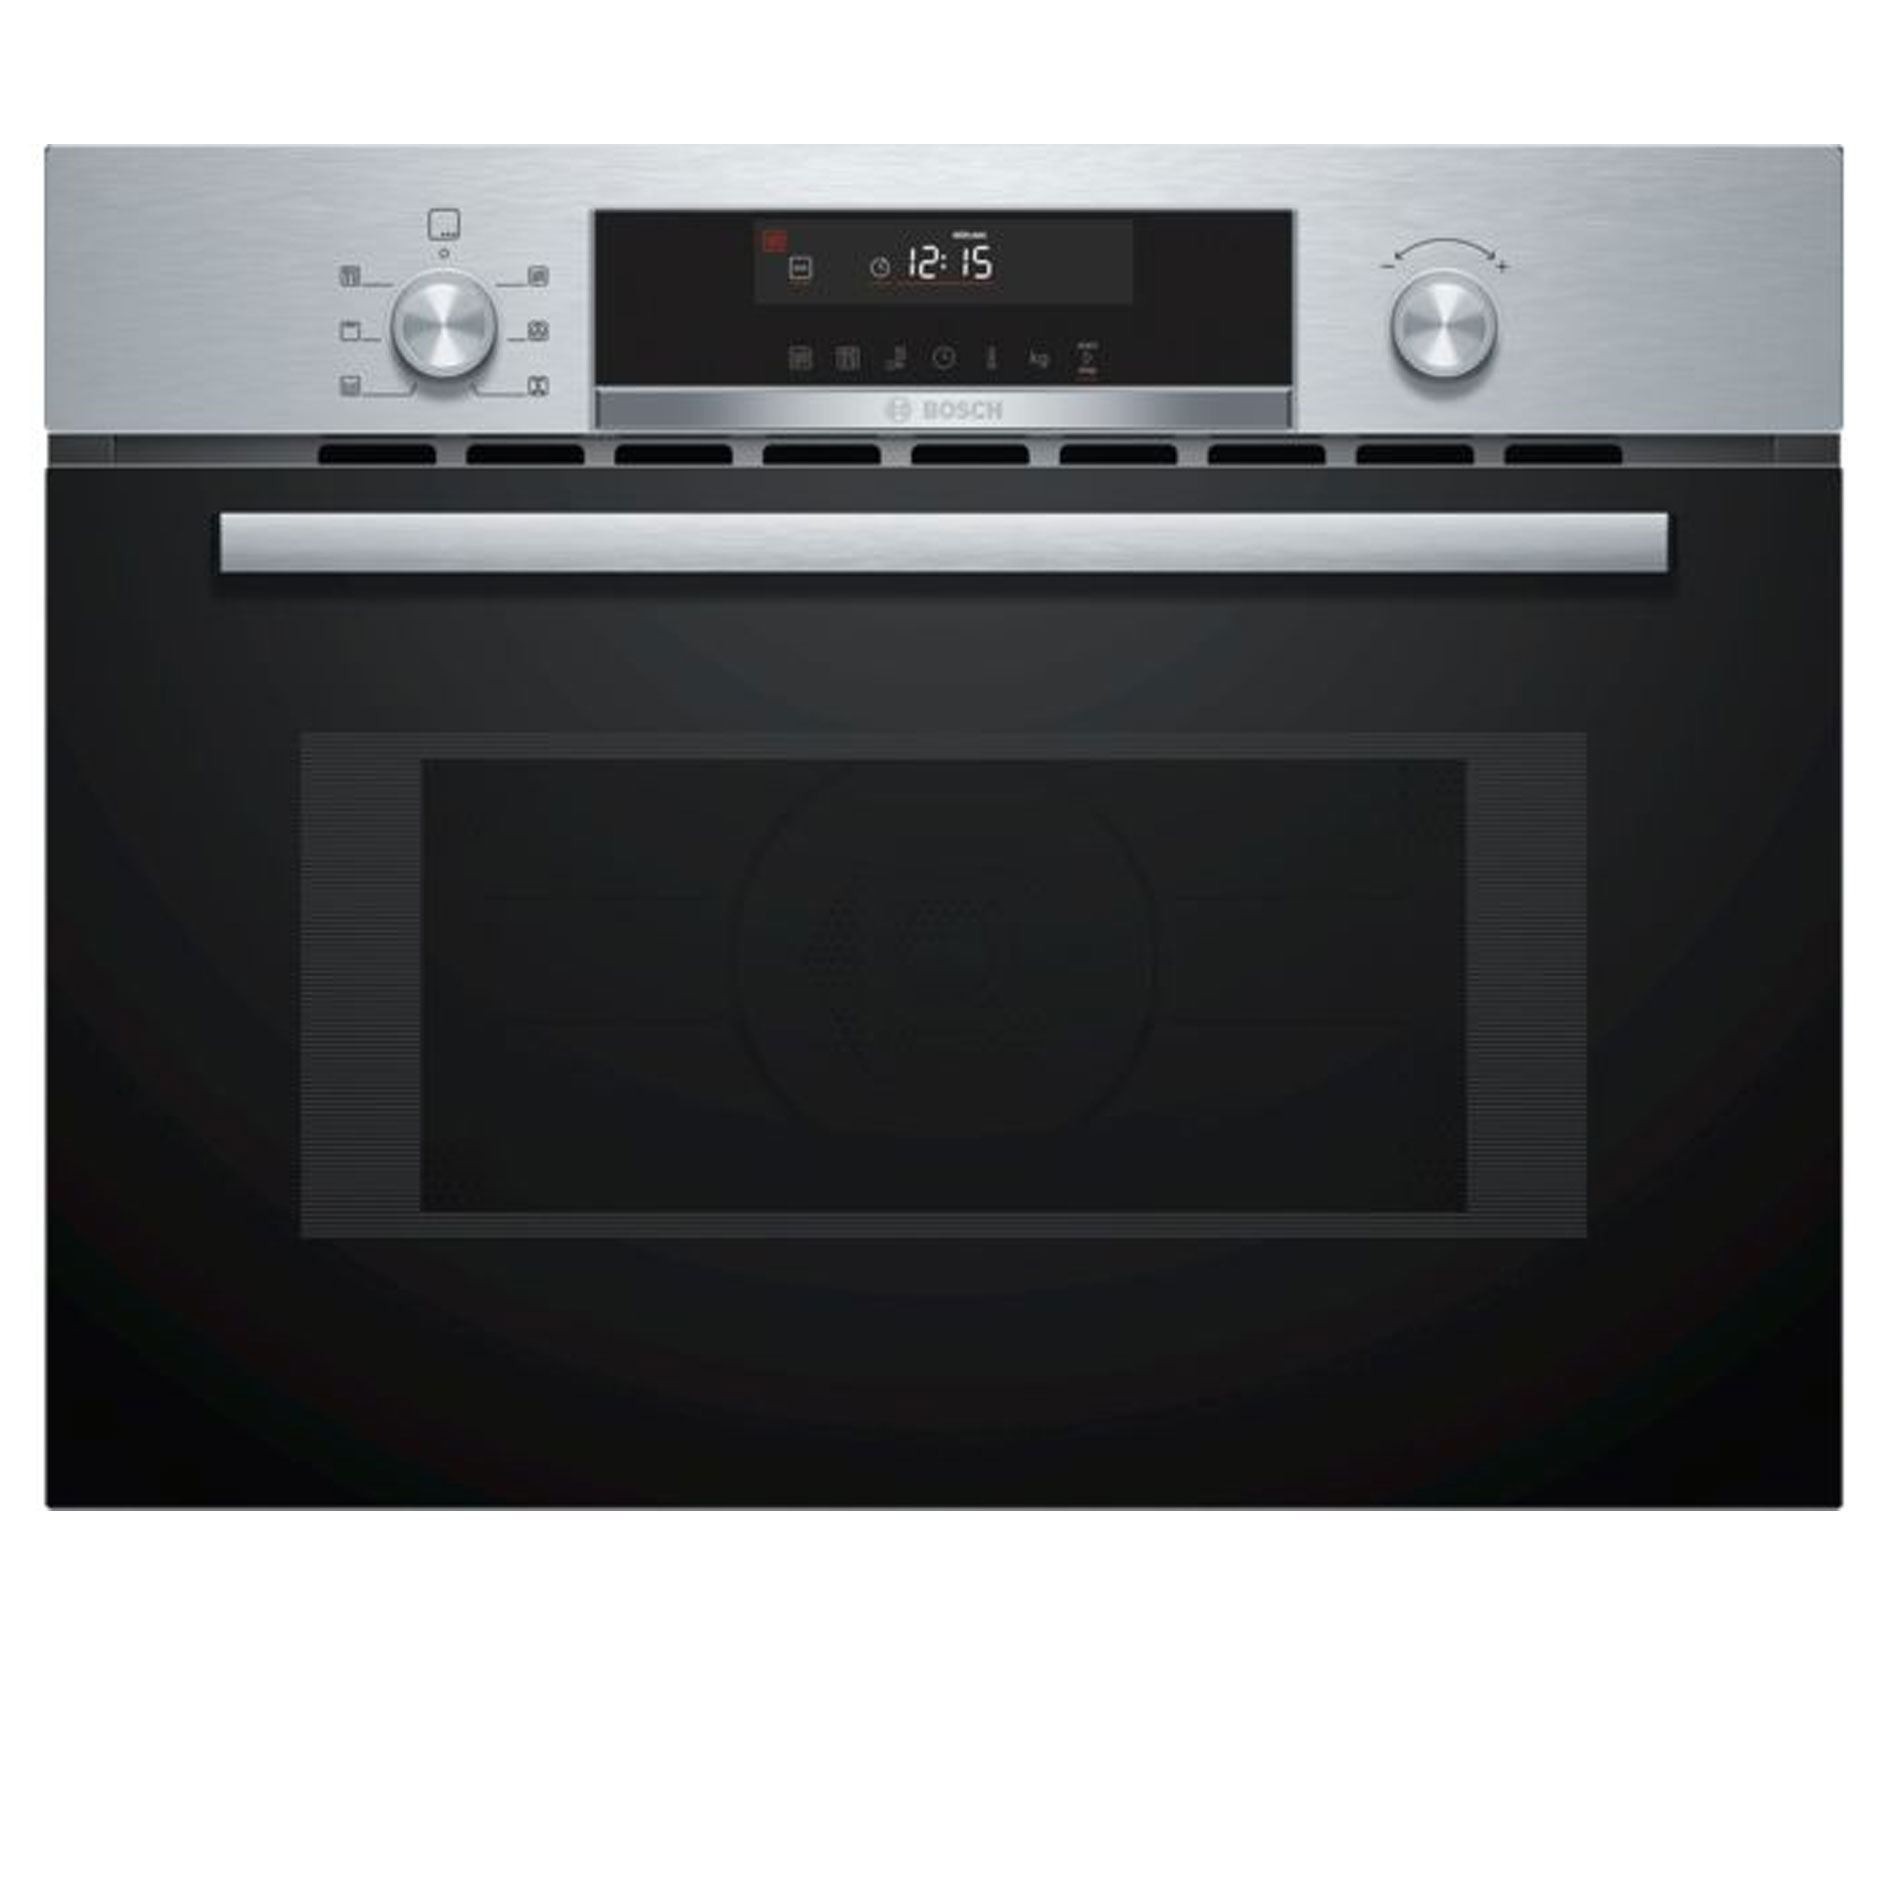 Picture of CMA585GS0B Built In Compact Microwave